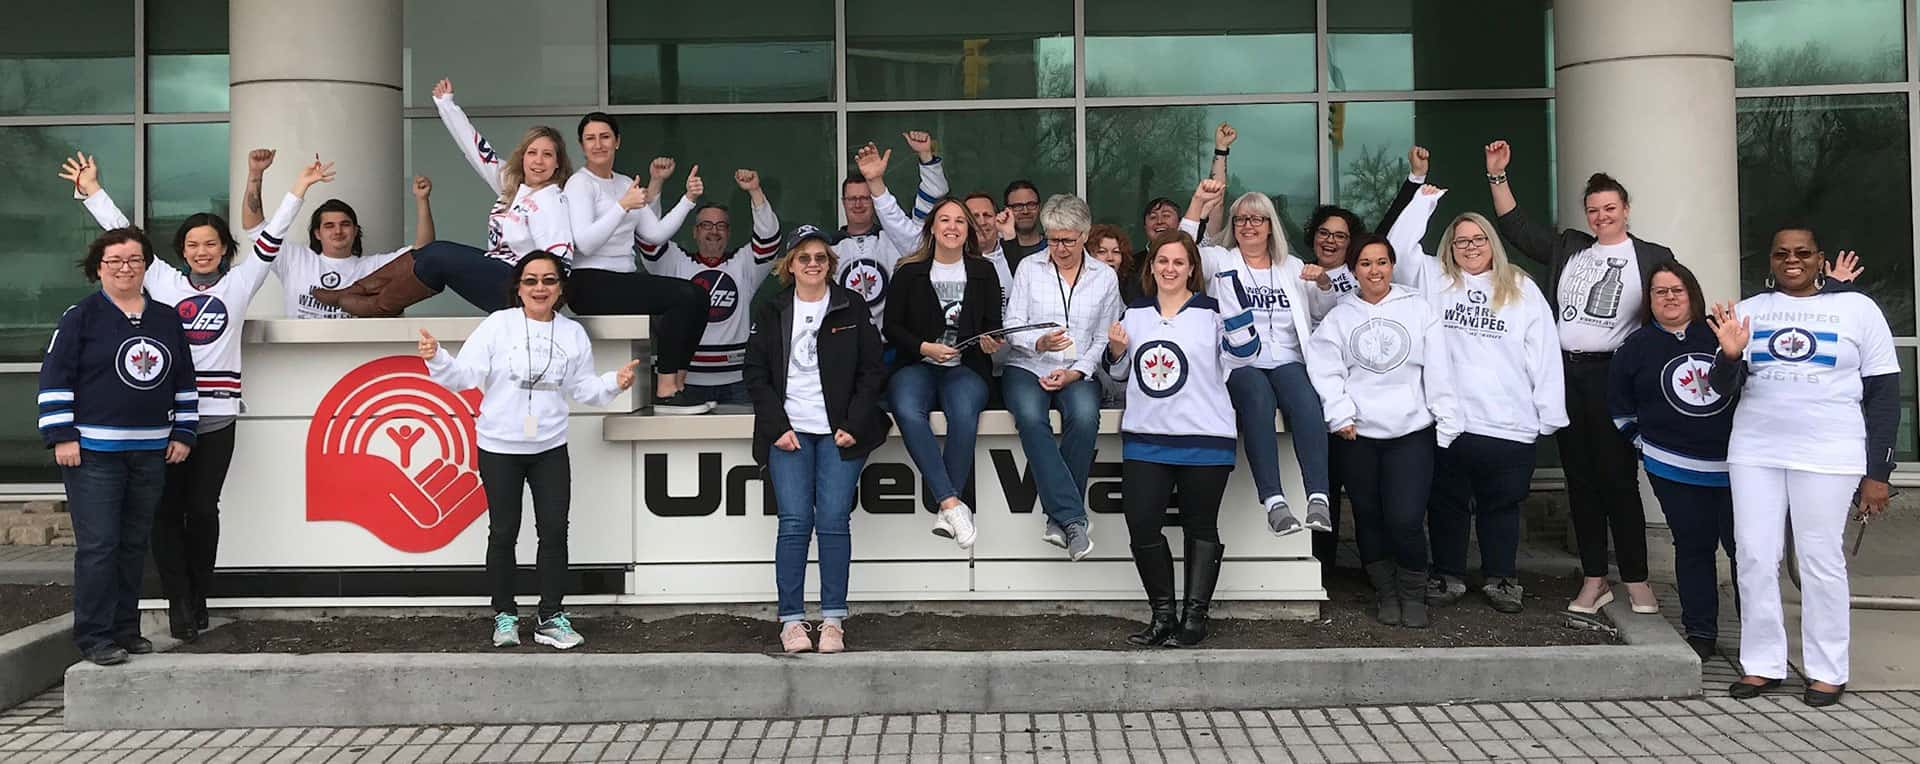 United Way Winnipeg staff celebrating the Winnipeg Whiteout.